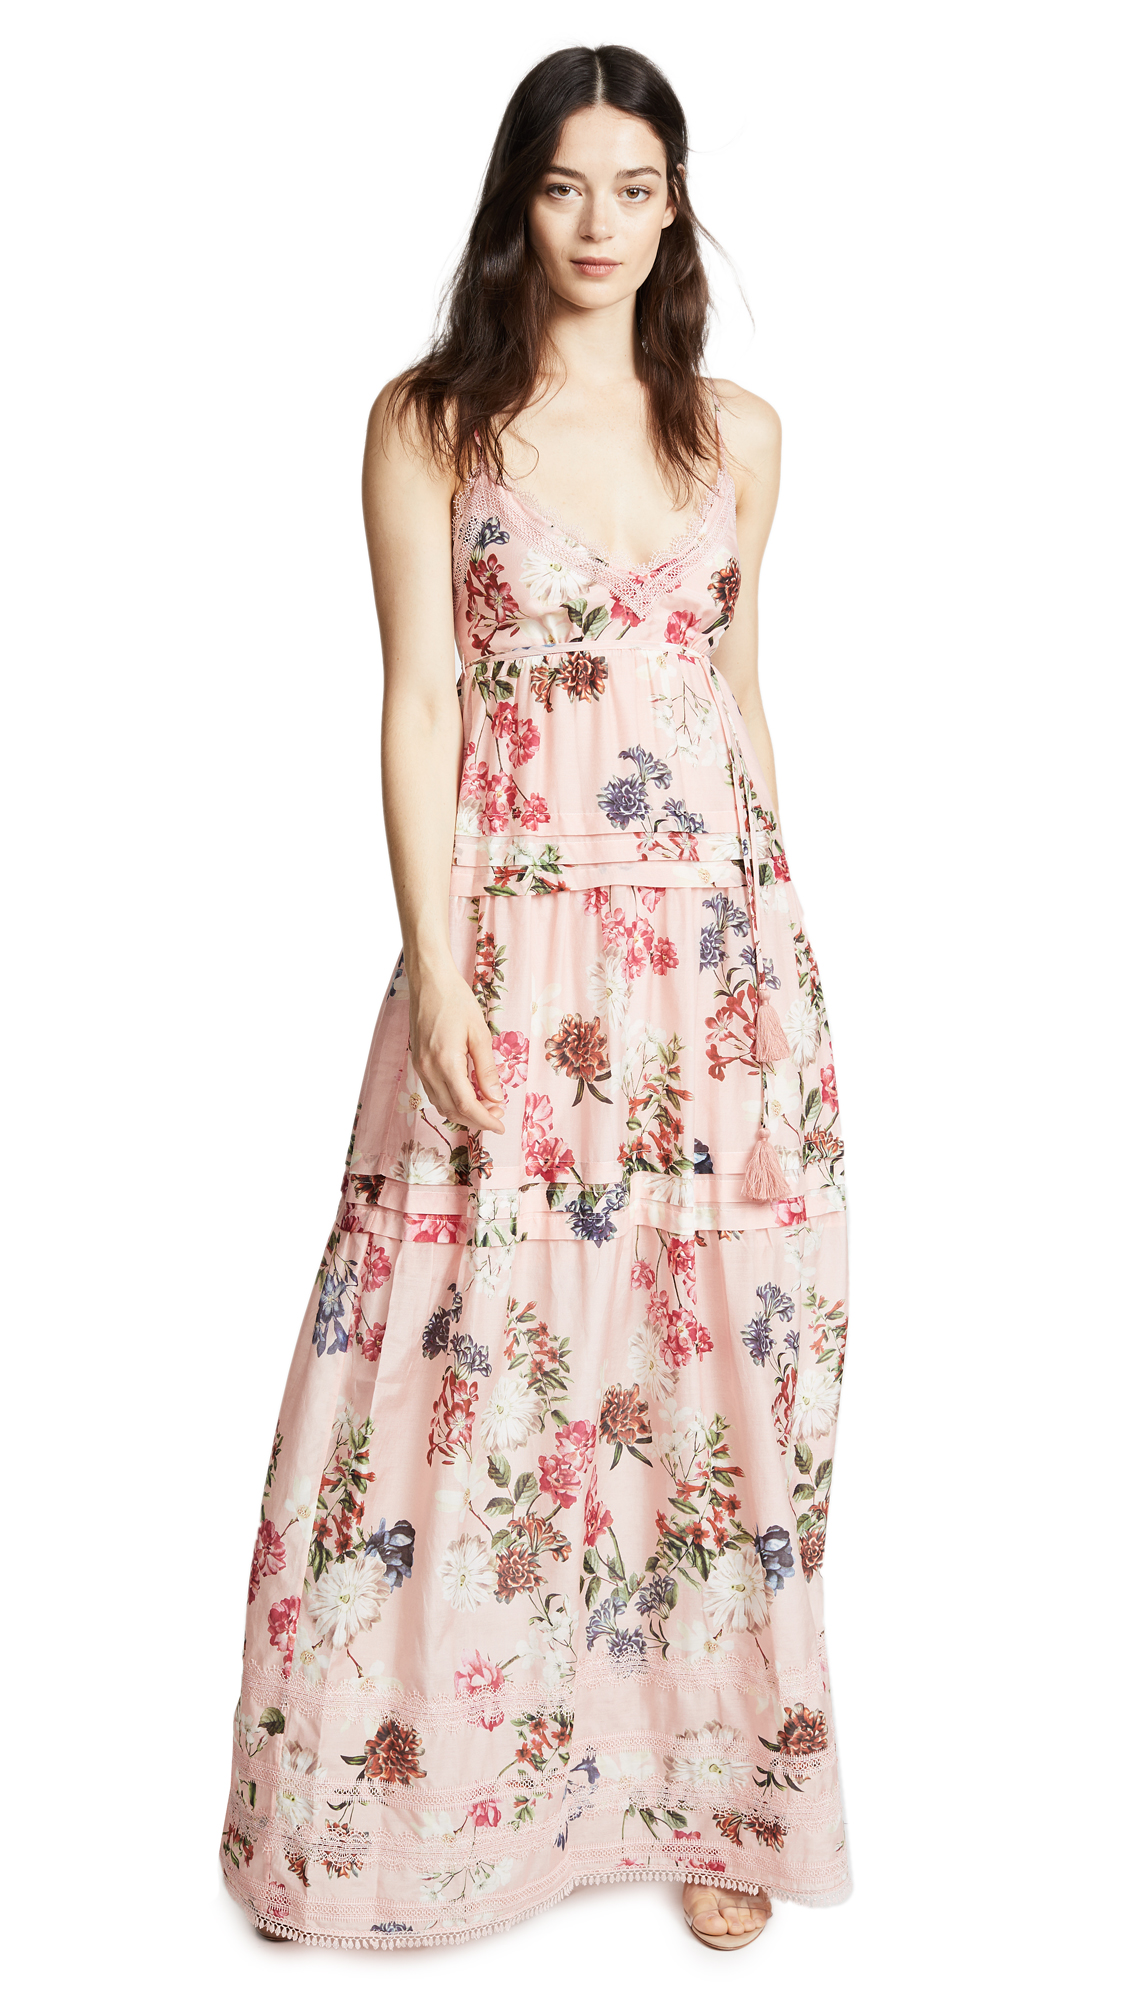 Nicholas Tiered Dress In Lilac Floral